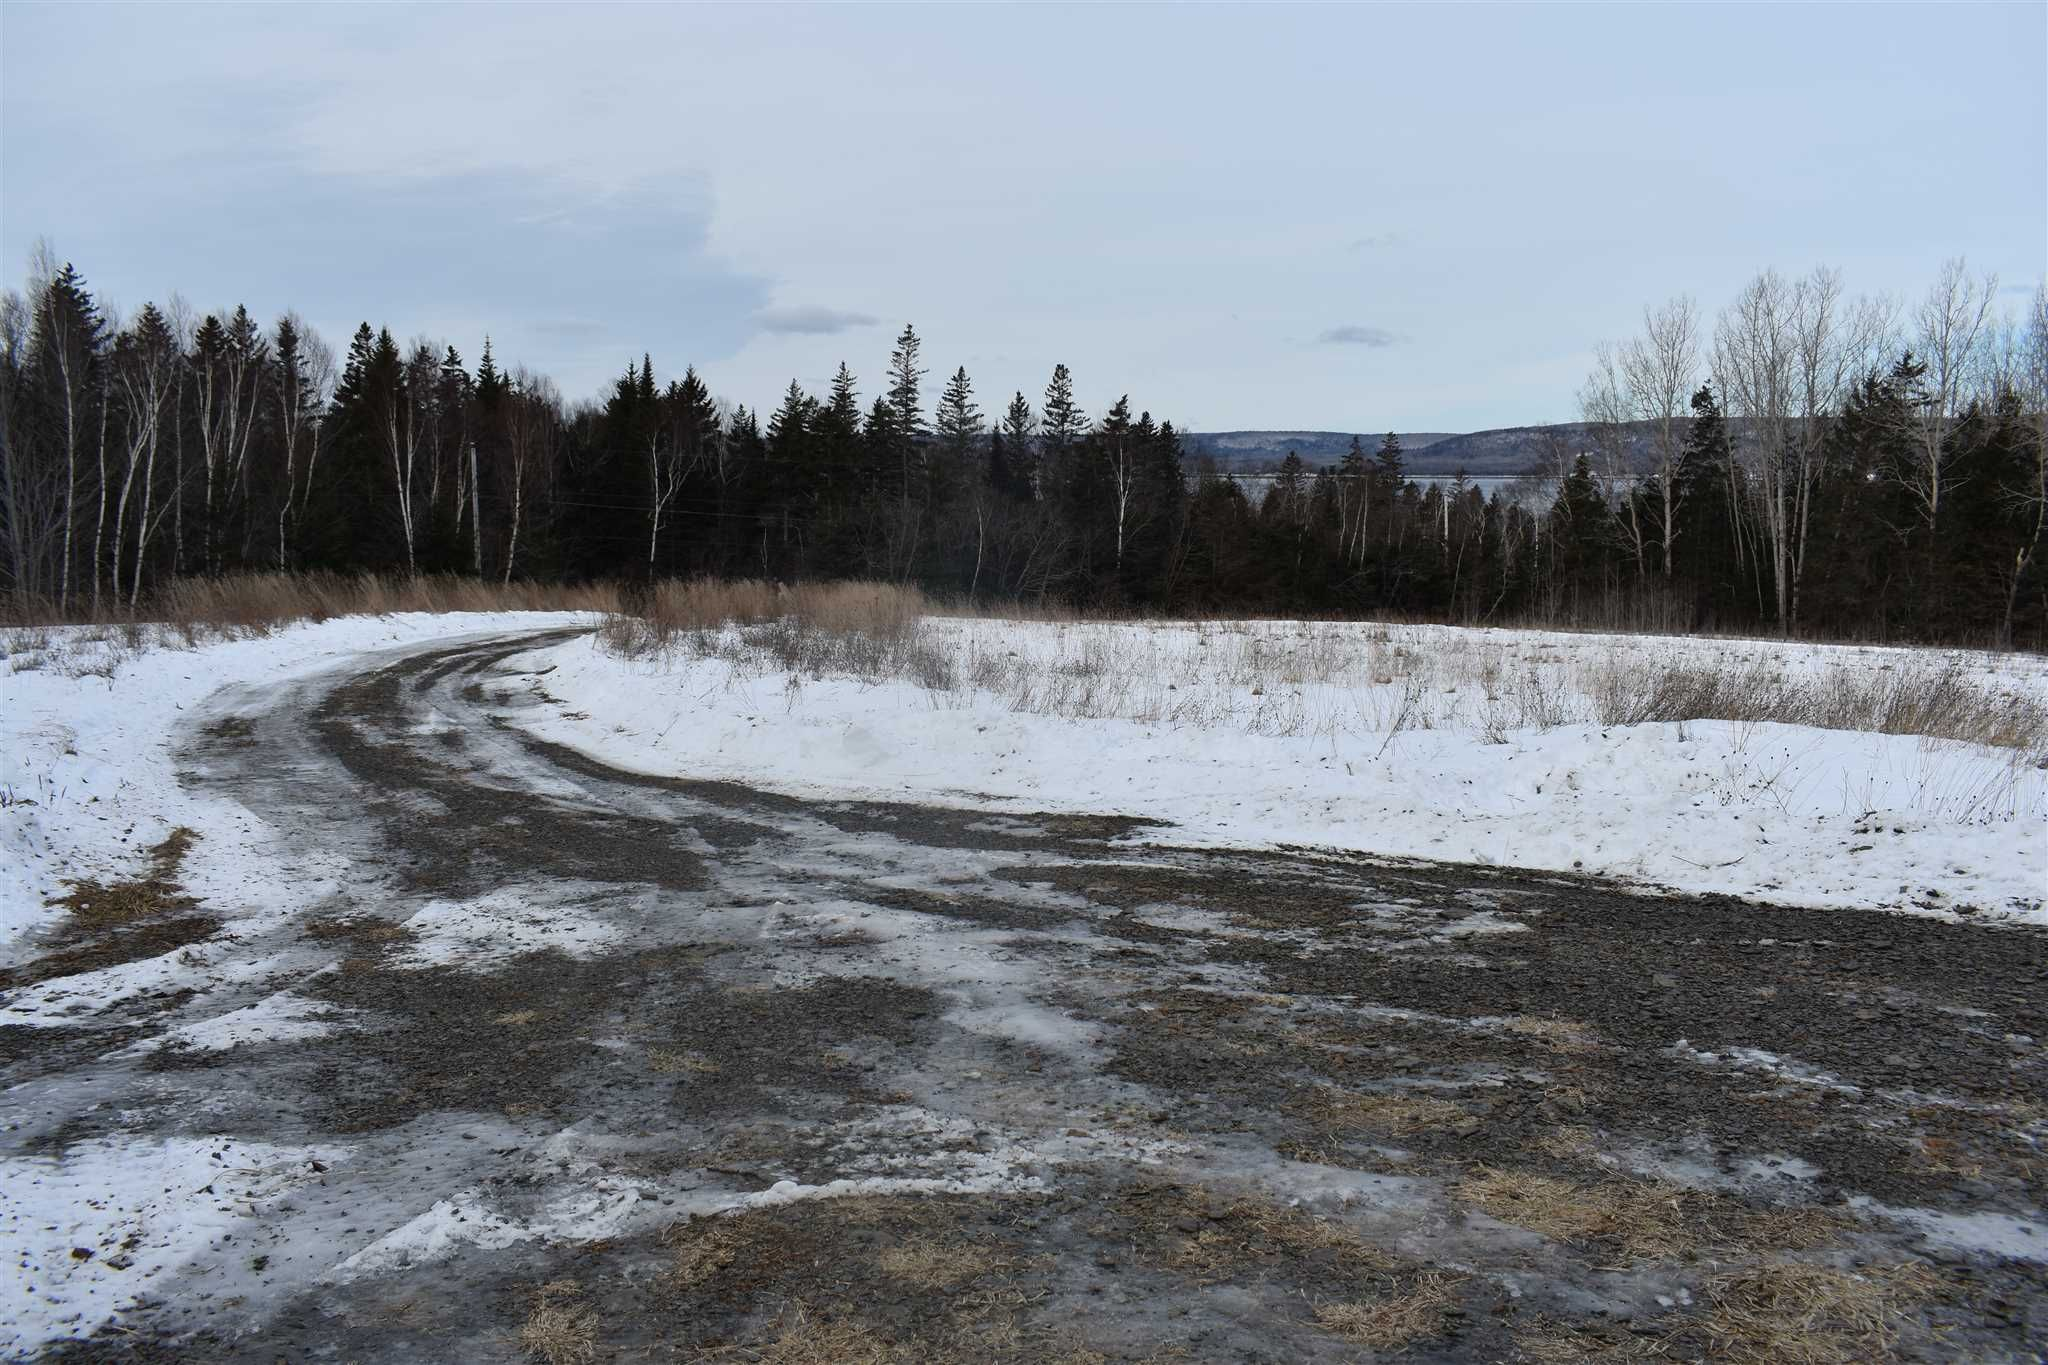 Main Photo: 414 Old Post Road in Clementsport: 400-Annapolis County Vacant Land for sale (Annapolis Valley)  : MLS®# 202102794